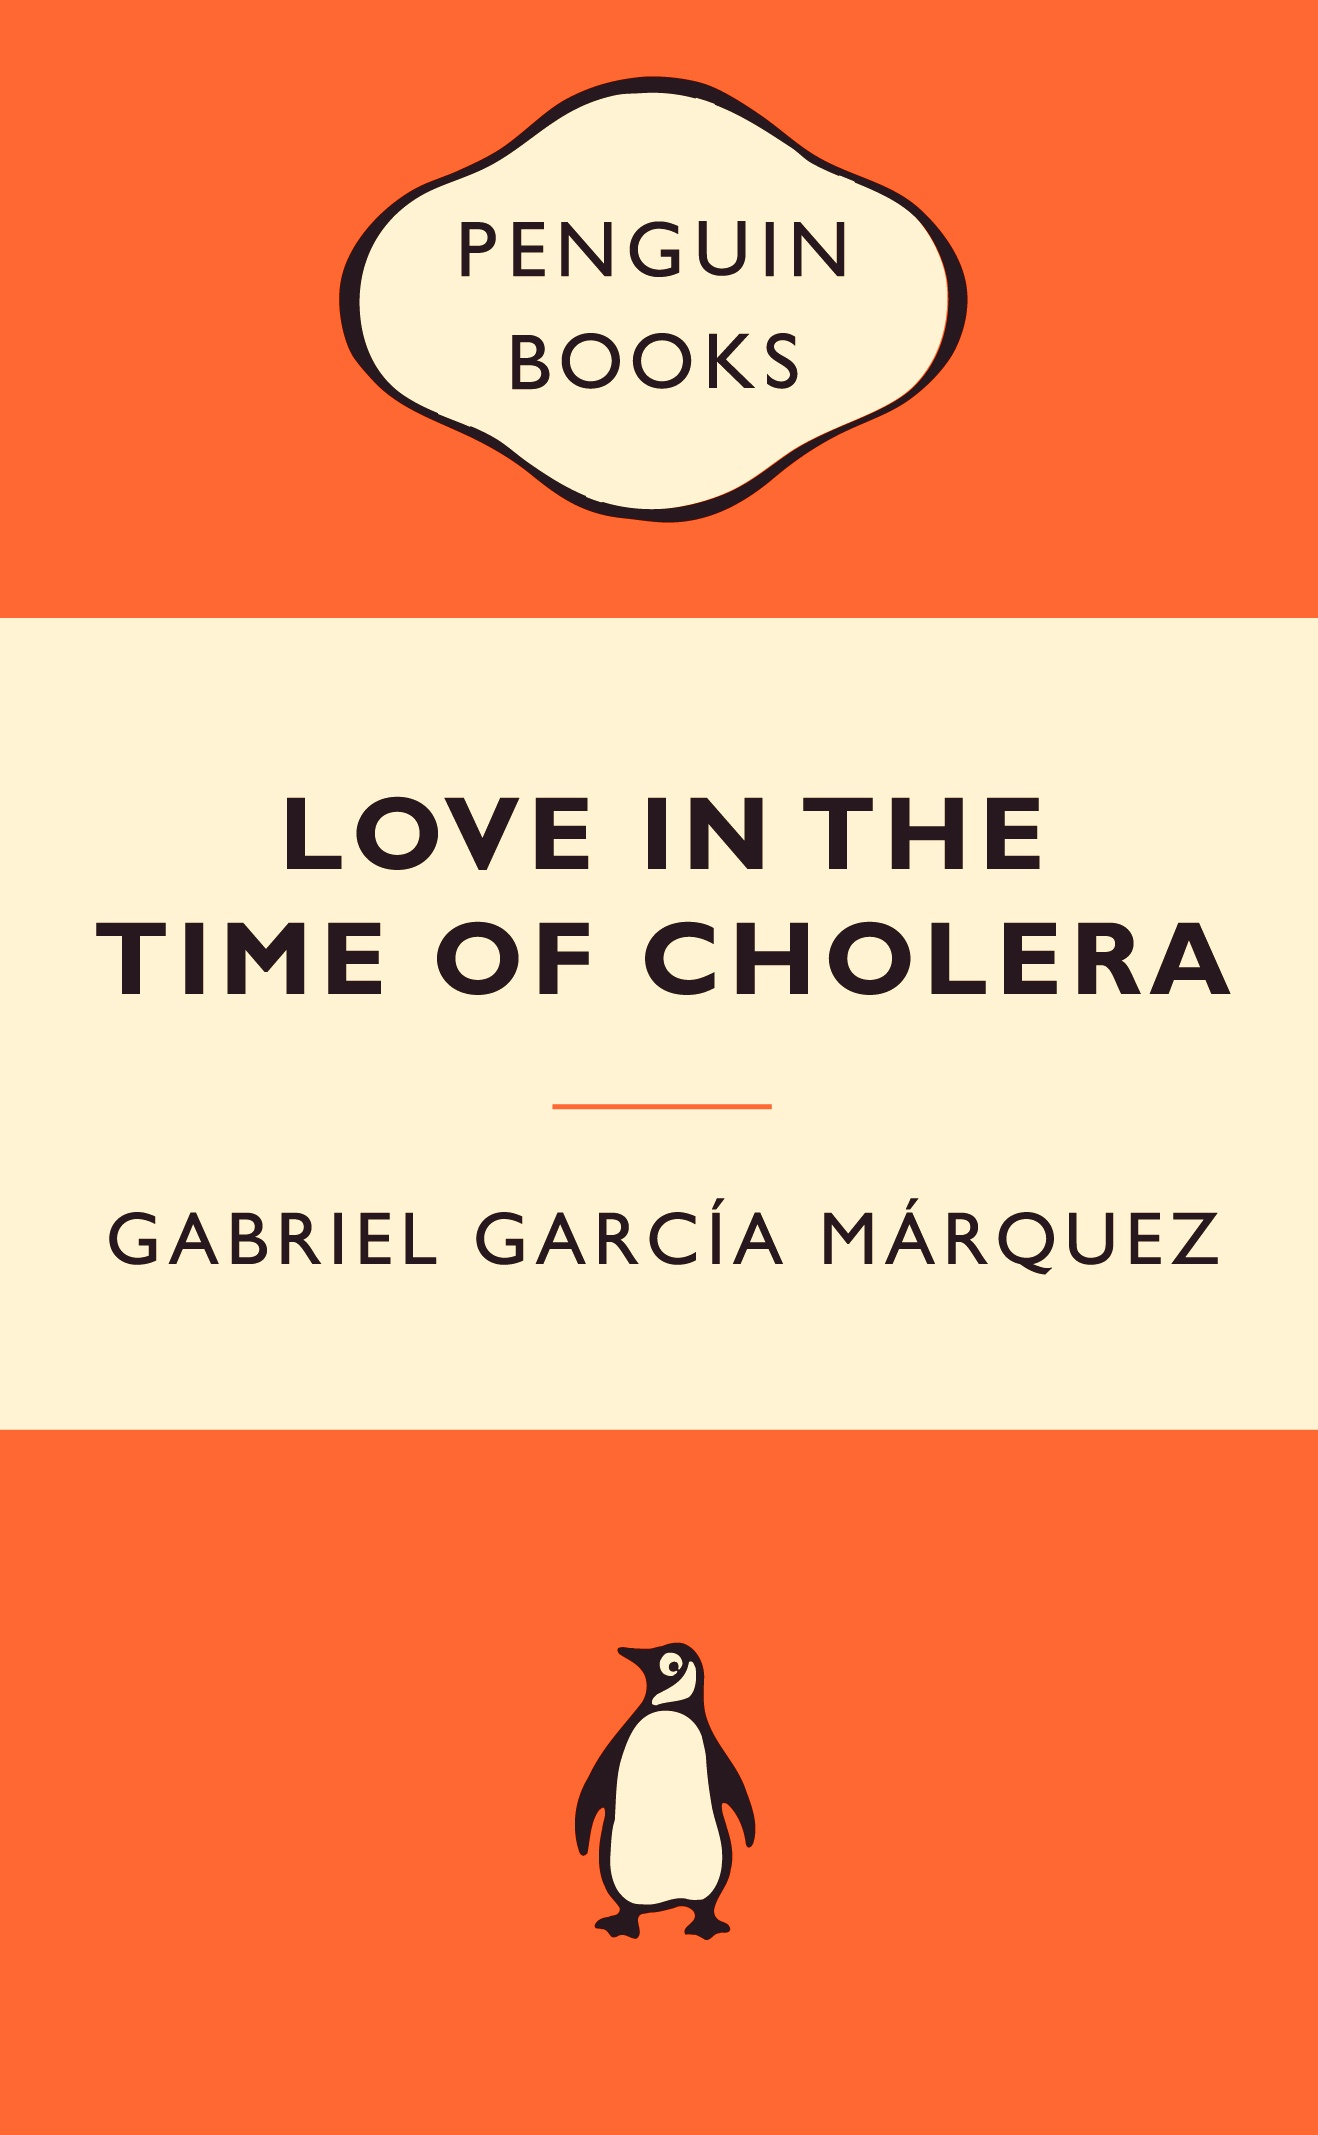 love in the time of cholera Love in the time of cholera is a favourite novel for lovers who take from it  something like love is  garcía márquez has set traps for both kinds of readers.